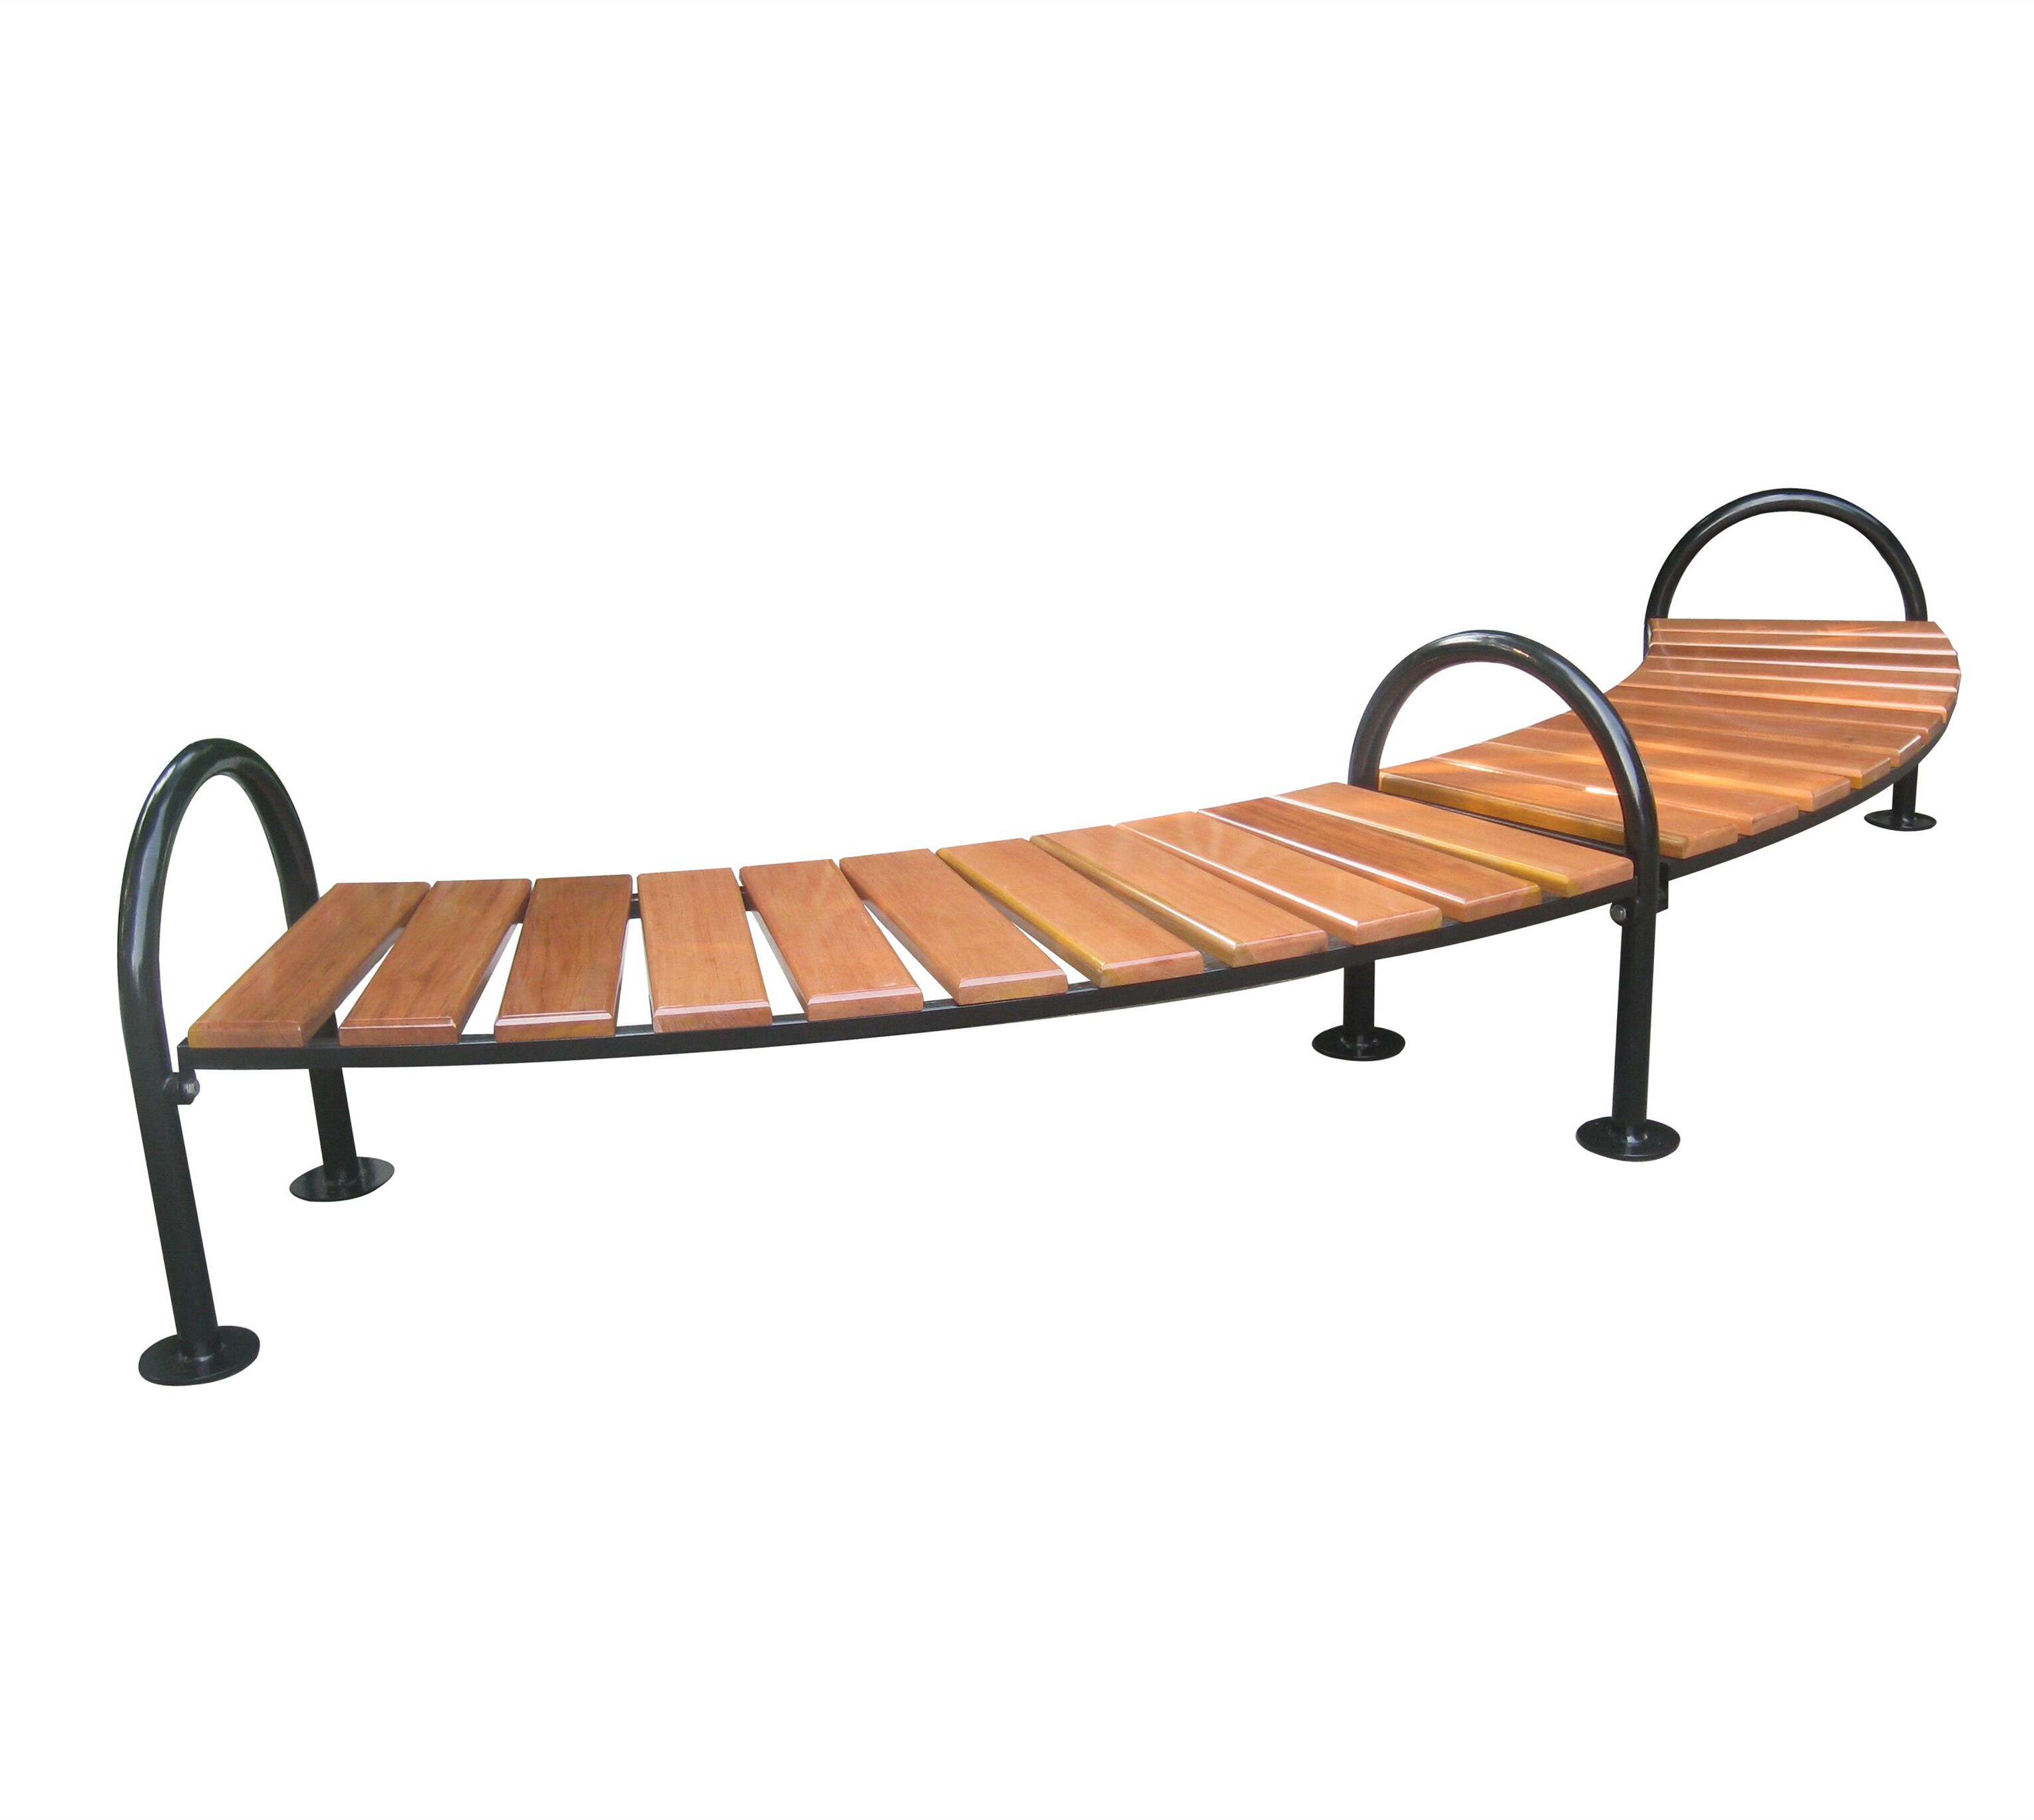 curved outdoor bench outdoor curved benches with indonesia solid wood seating buy curved outdoor bench curved bench outdoor curved benches product